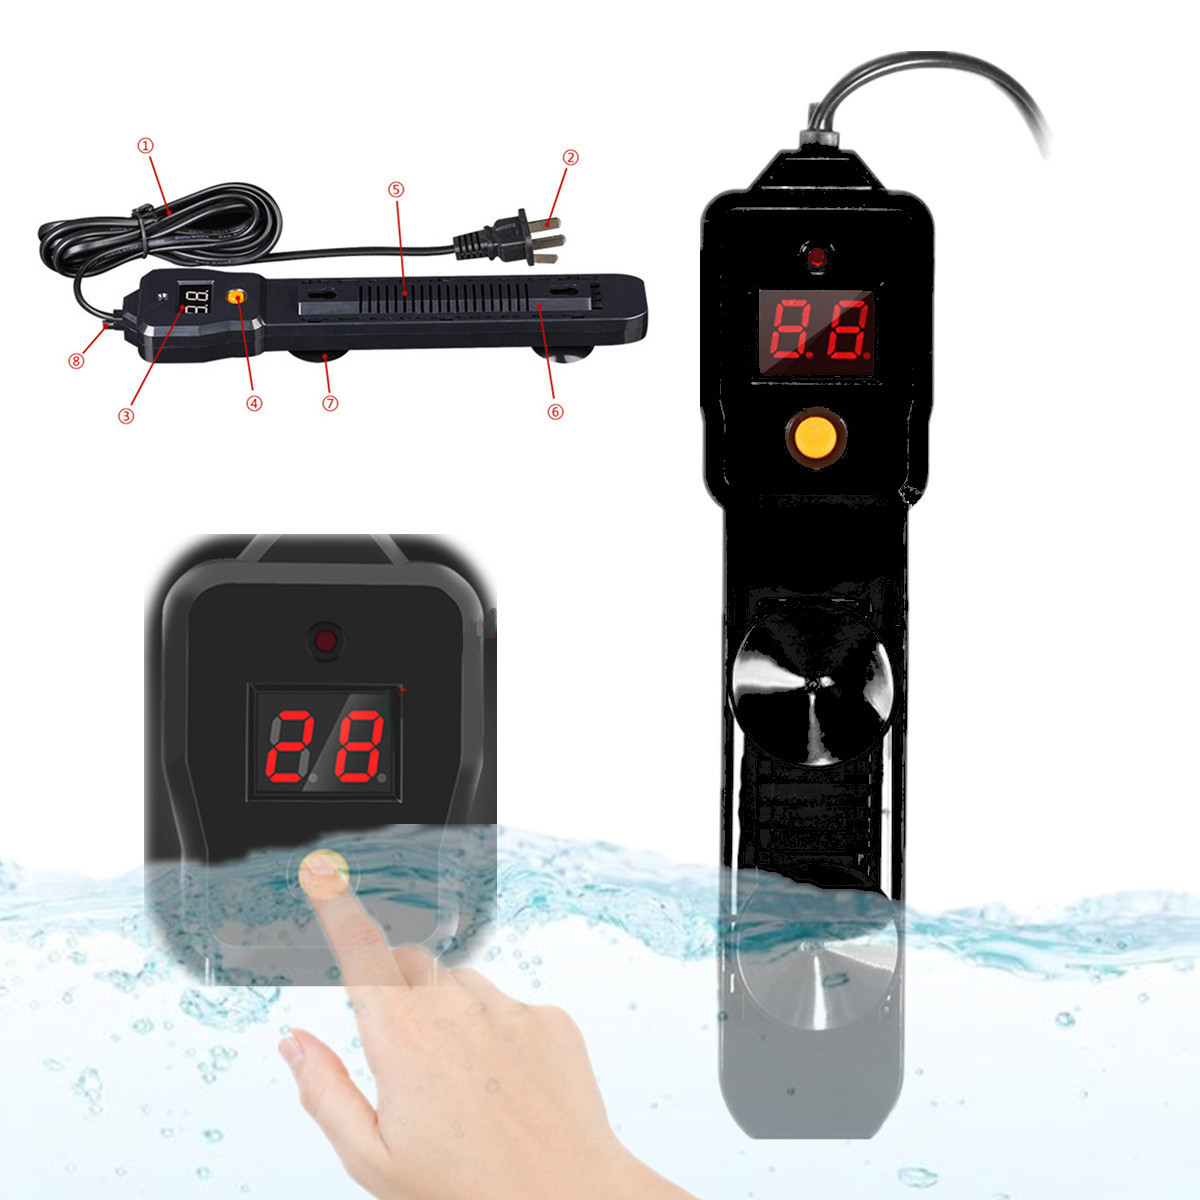 lcd 100w auto chauffage chauffe eau submersible ventouse. Black Bedroom Furniture Sets. Home Design Ideas